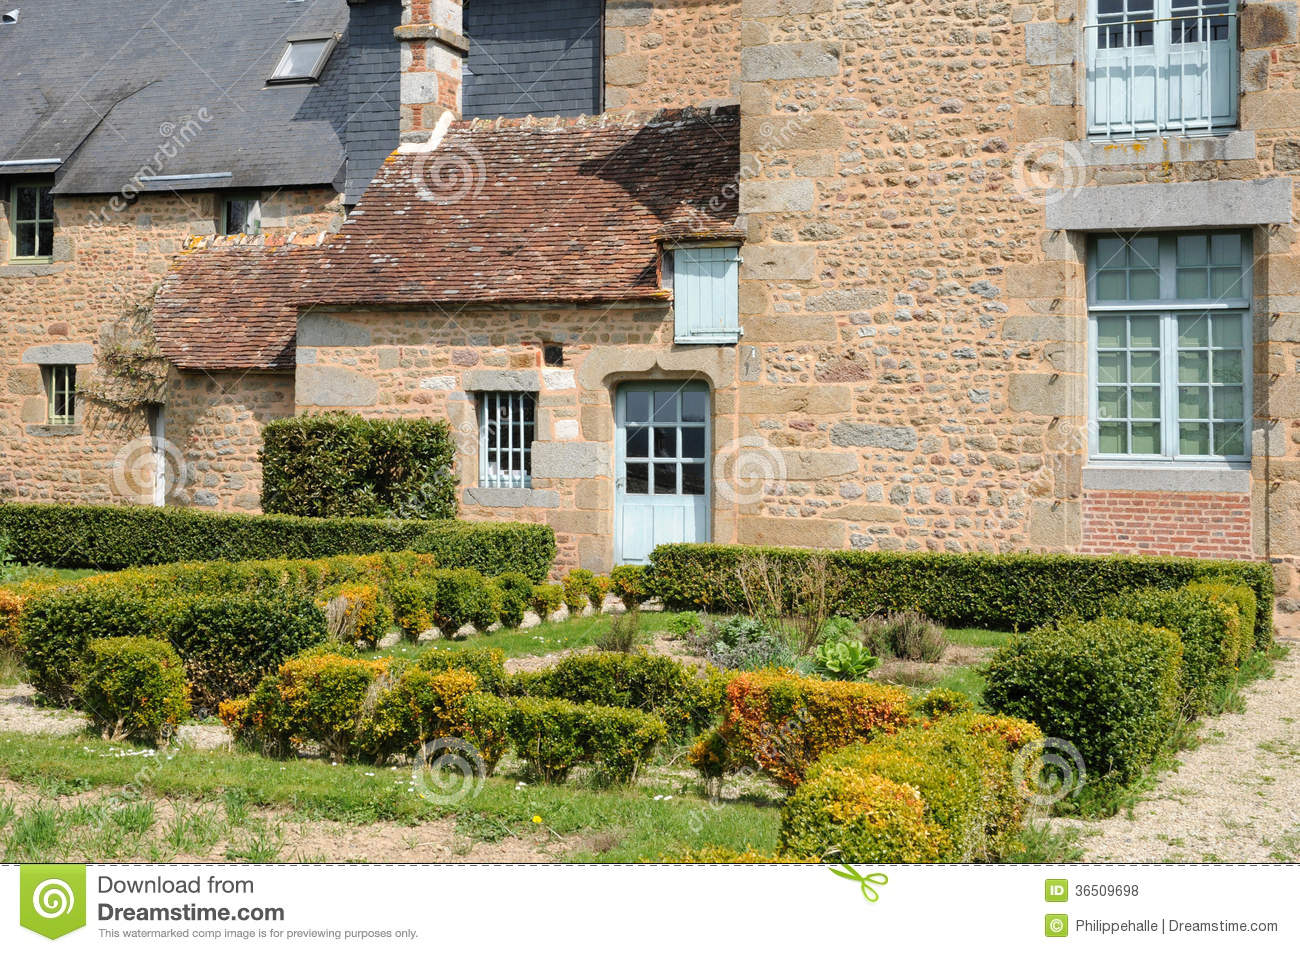 Frances, village pittoresque de Carrouges dans Normandie